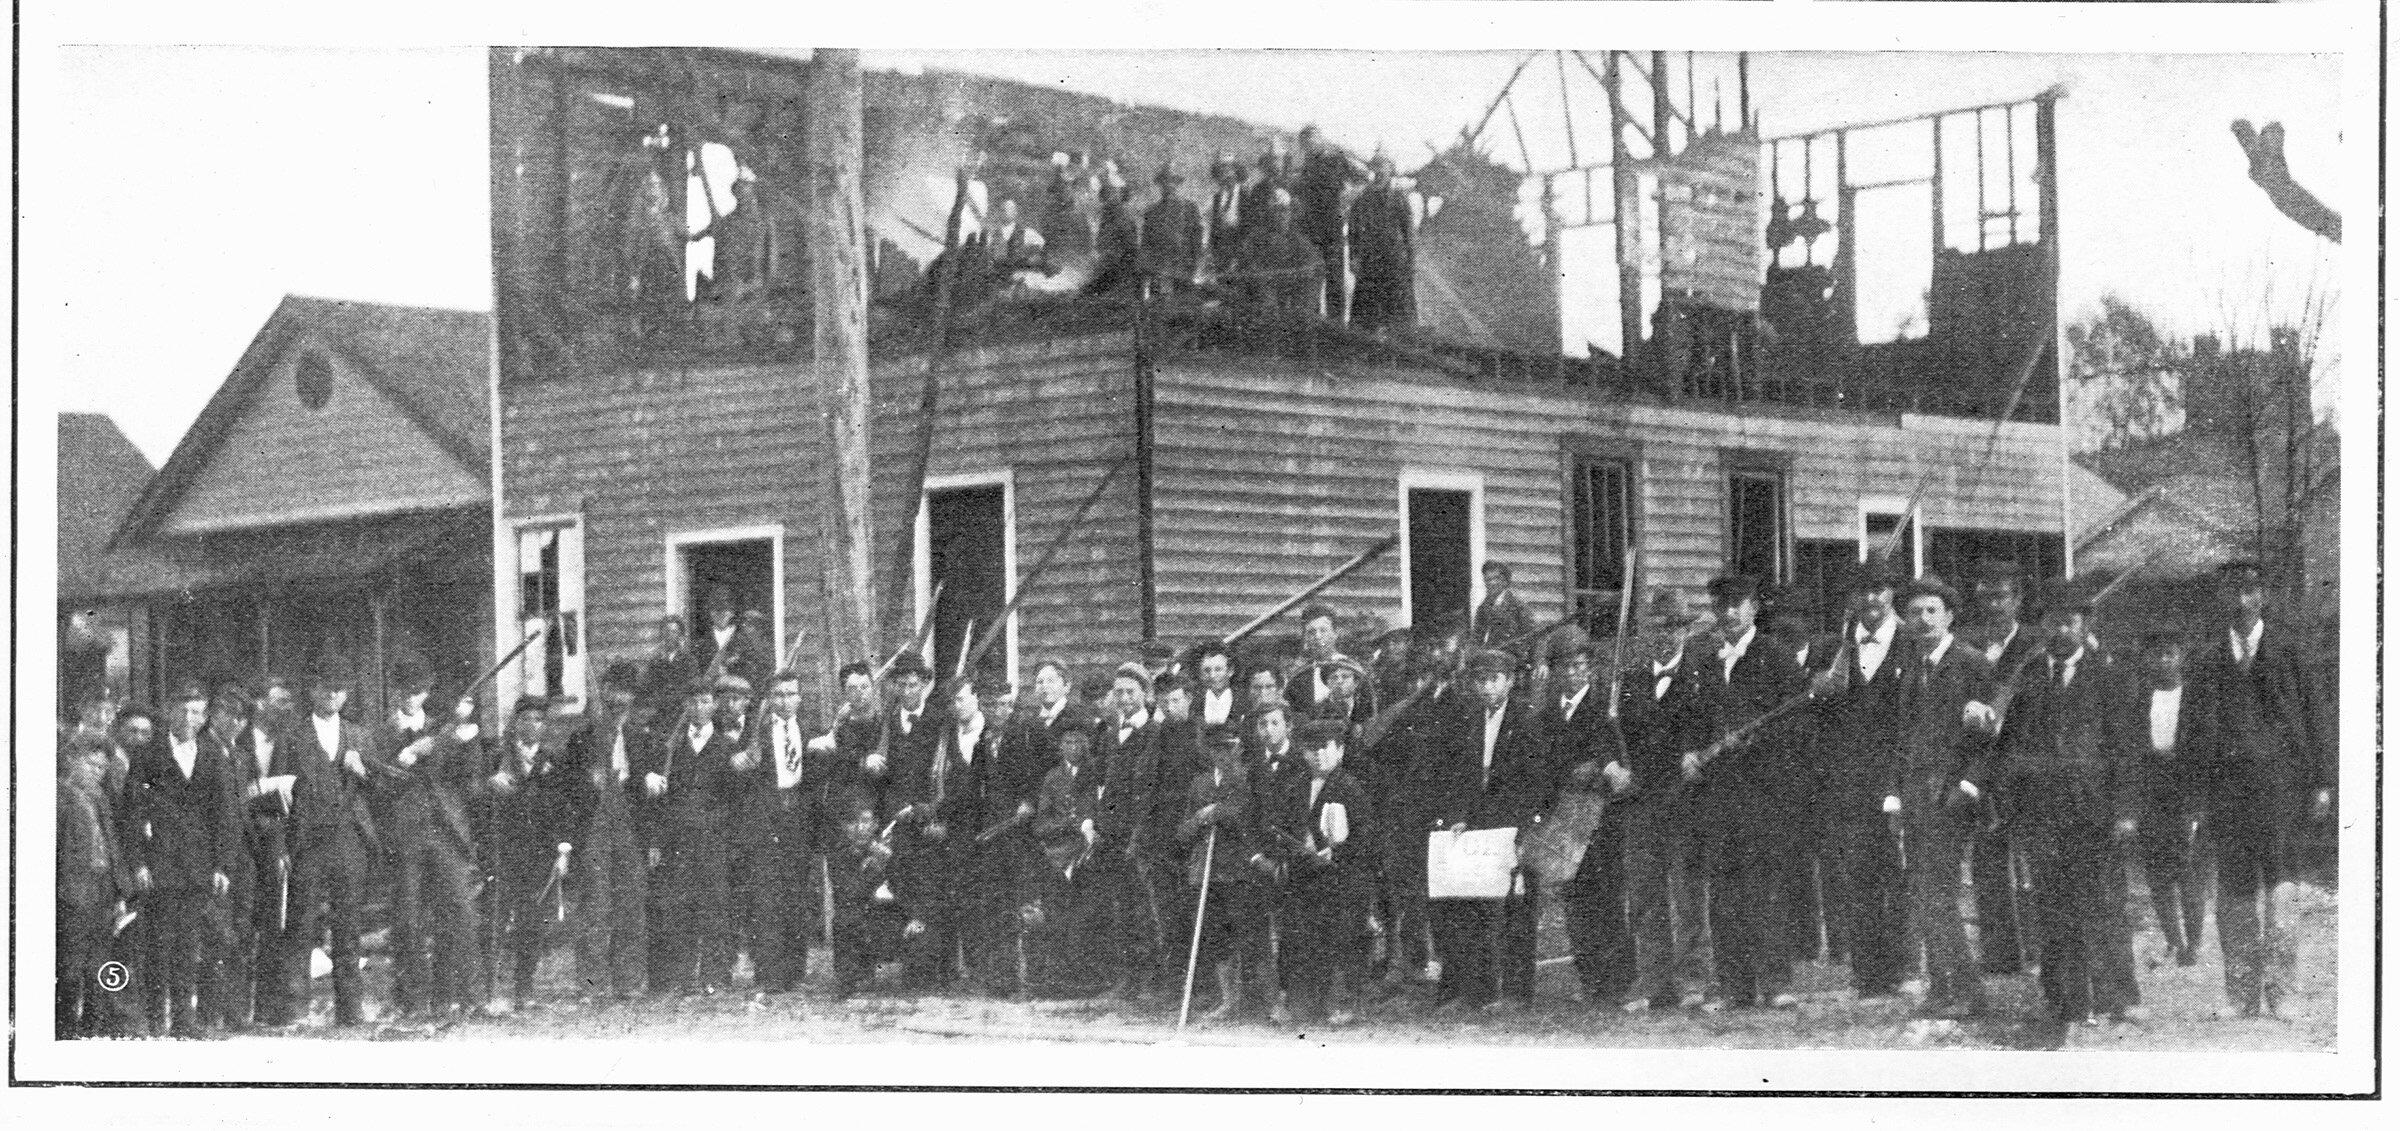 The 1898 Wilmington Massacre Is an Essential Lesson in How State Violence Has Targeted Black Americans